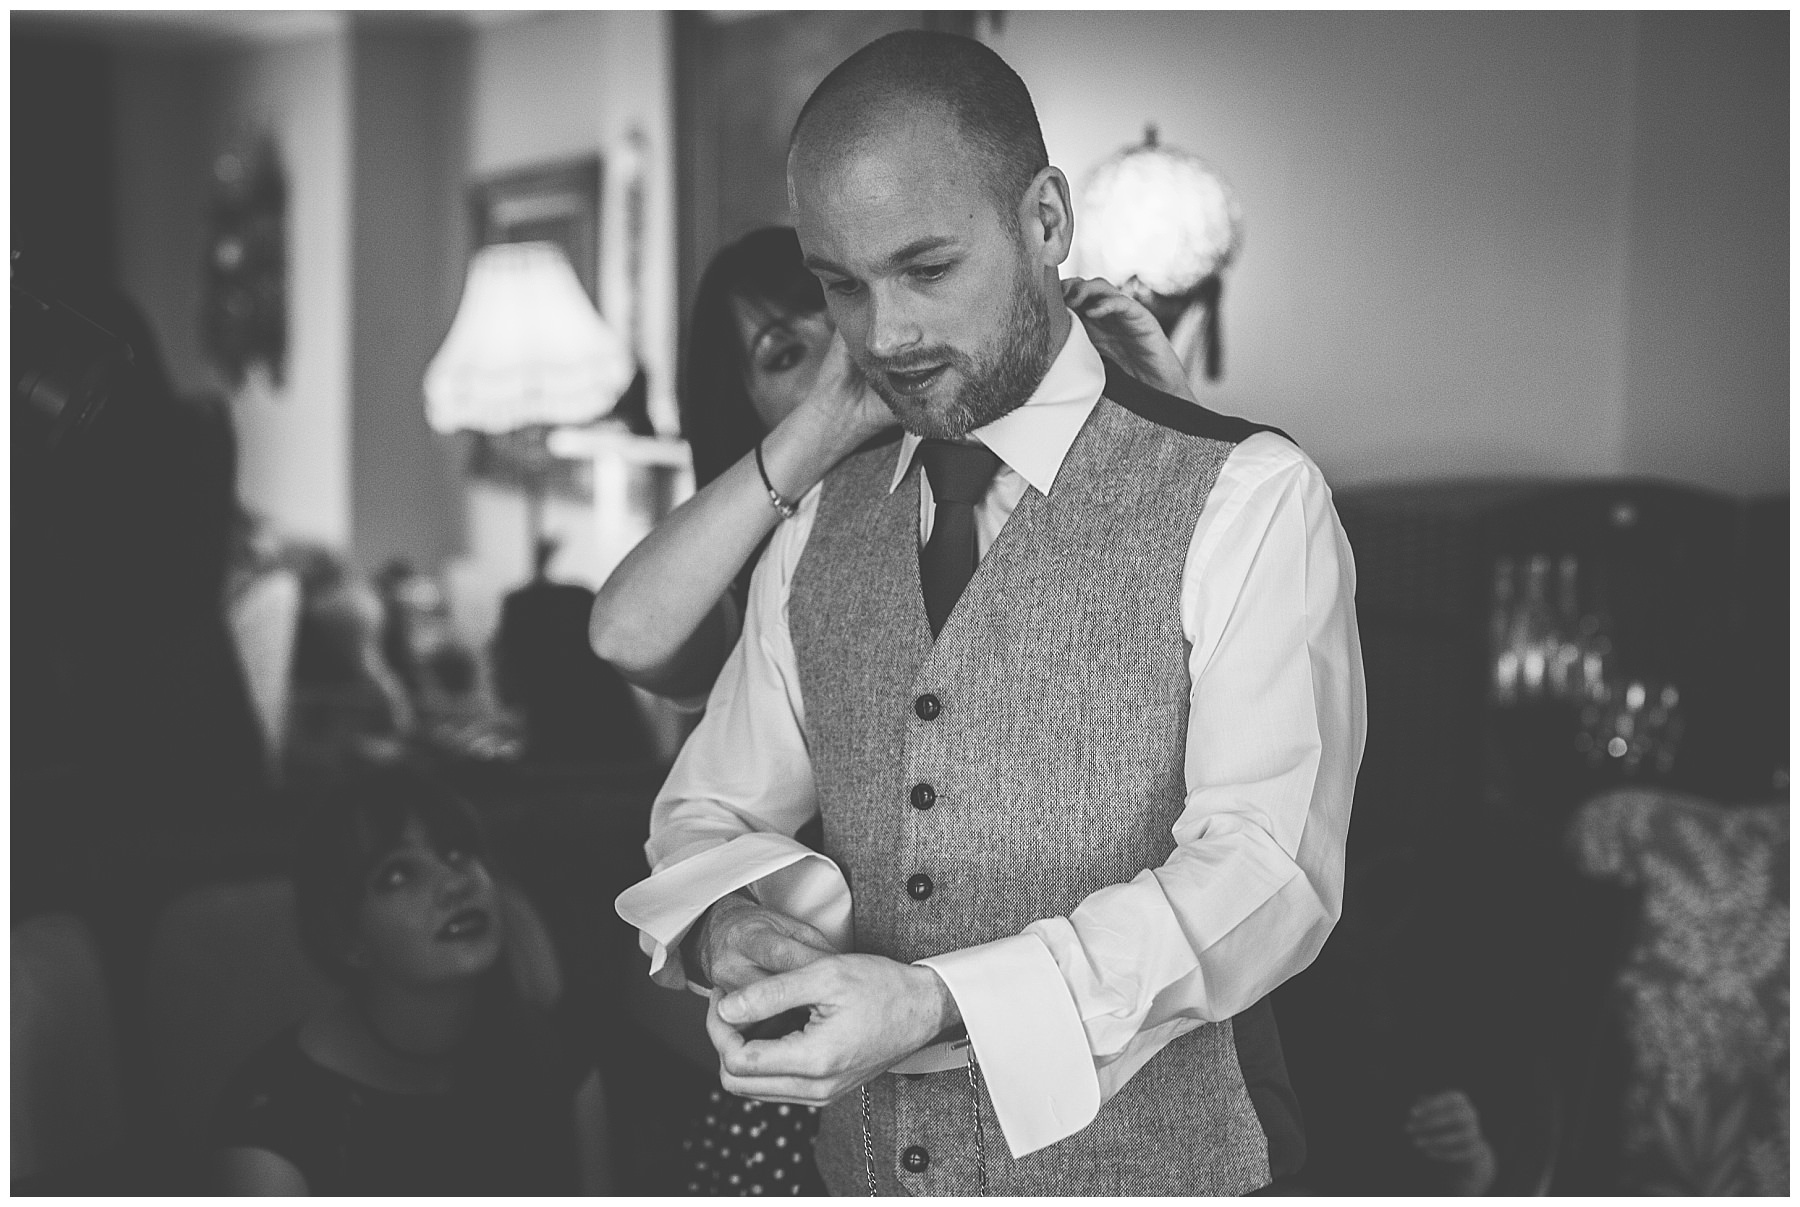 Groom applies his finishing touches before the wedding